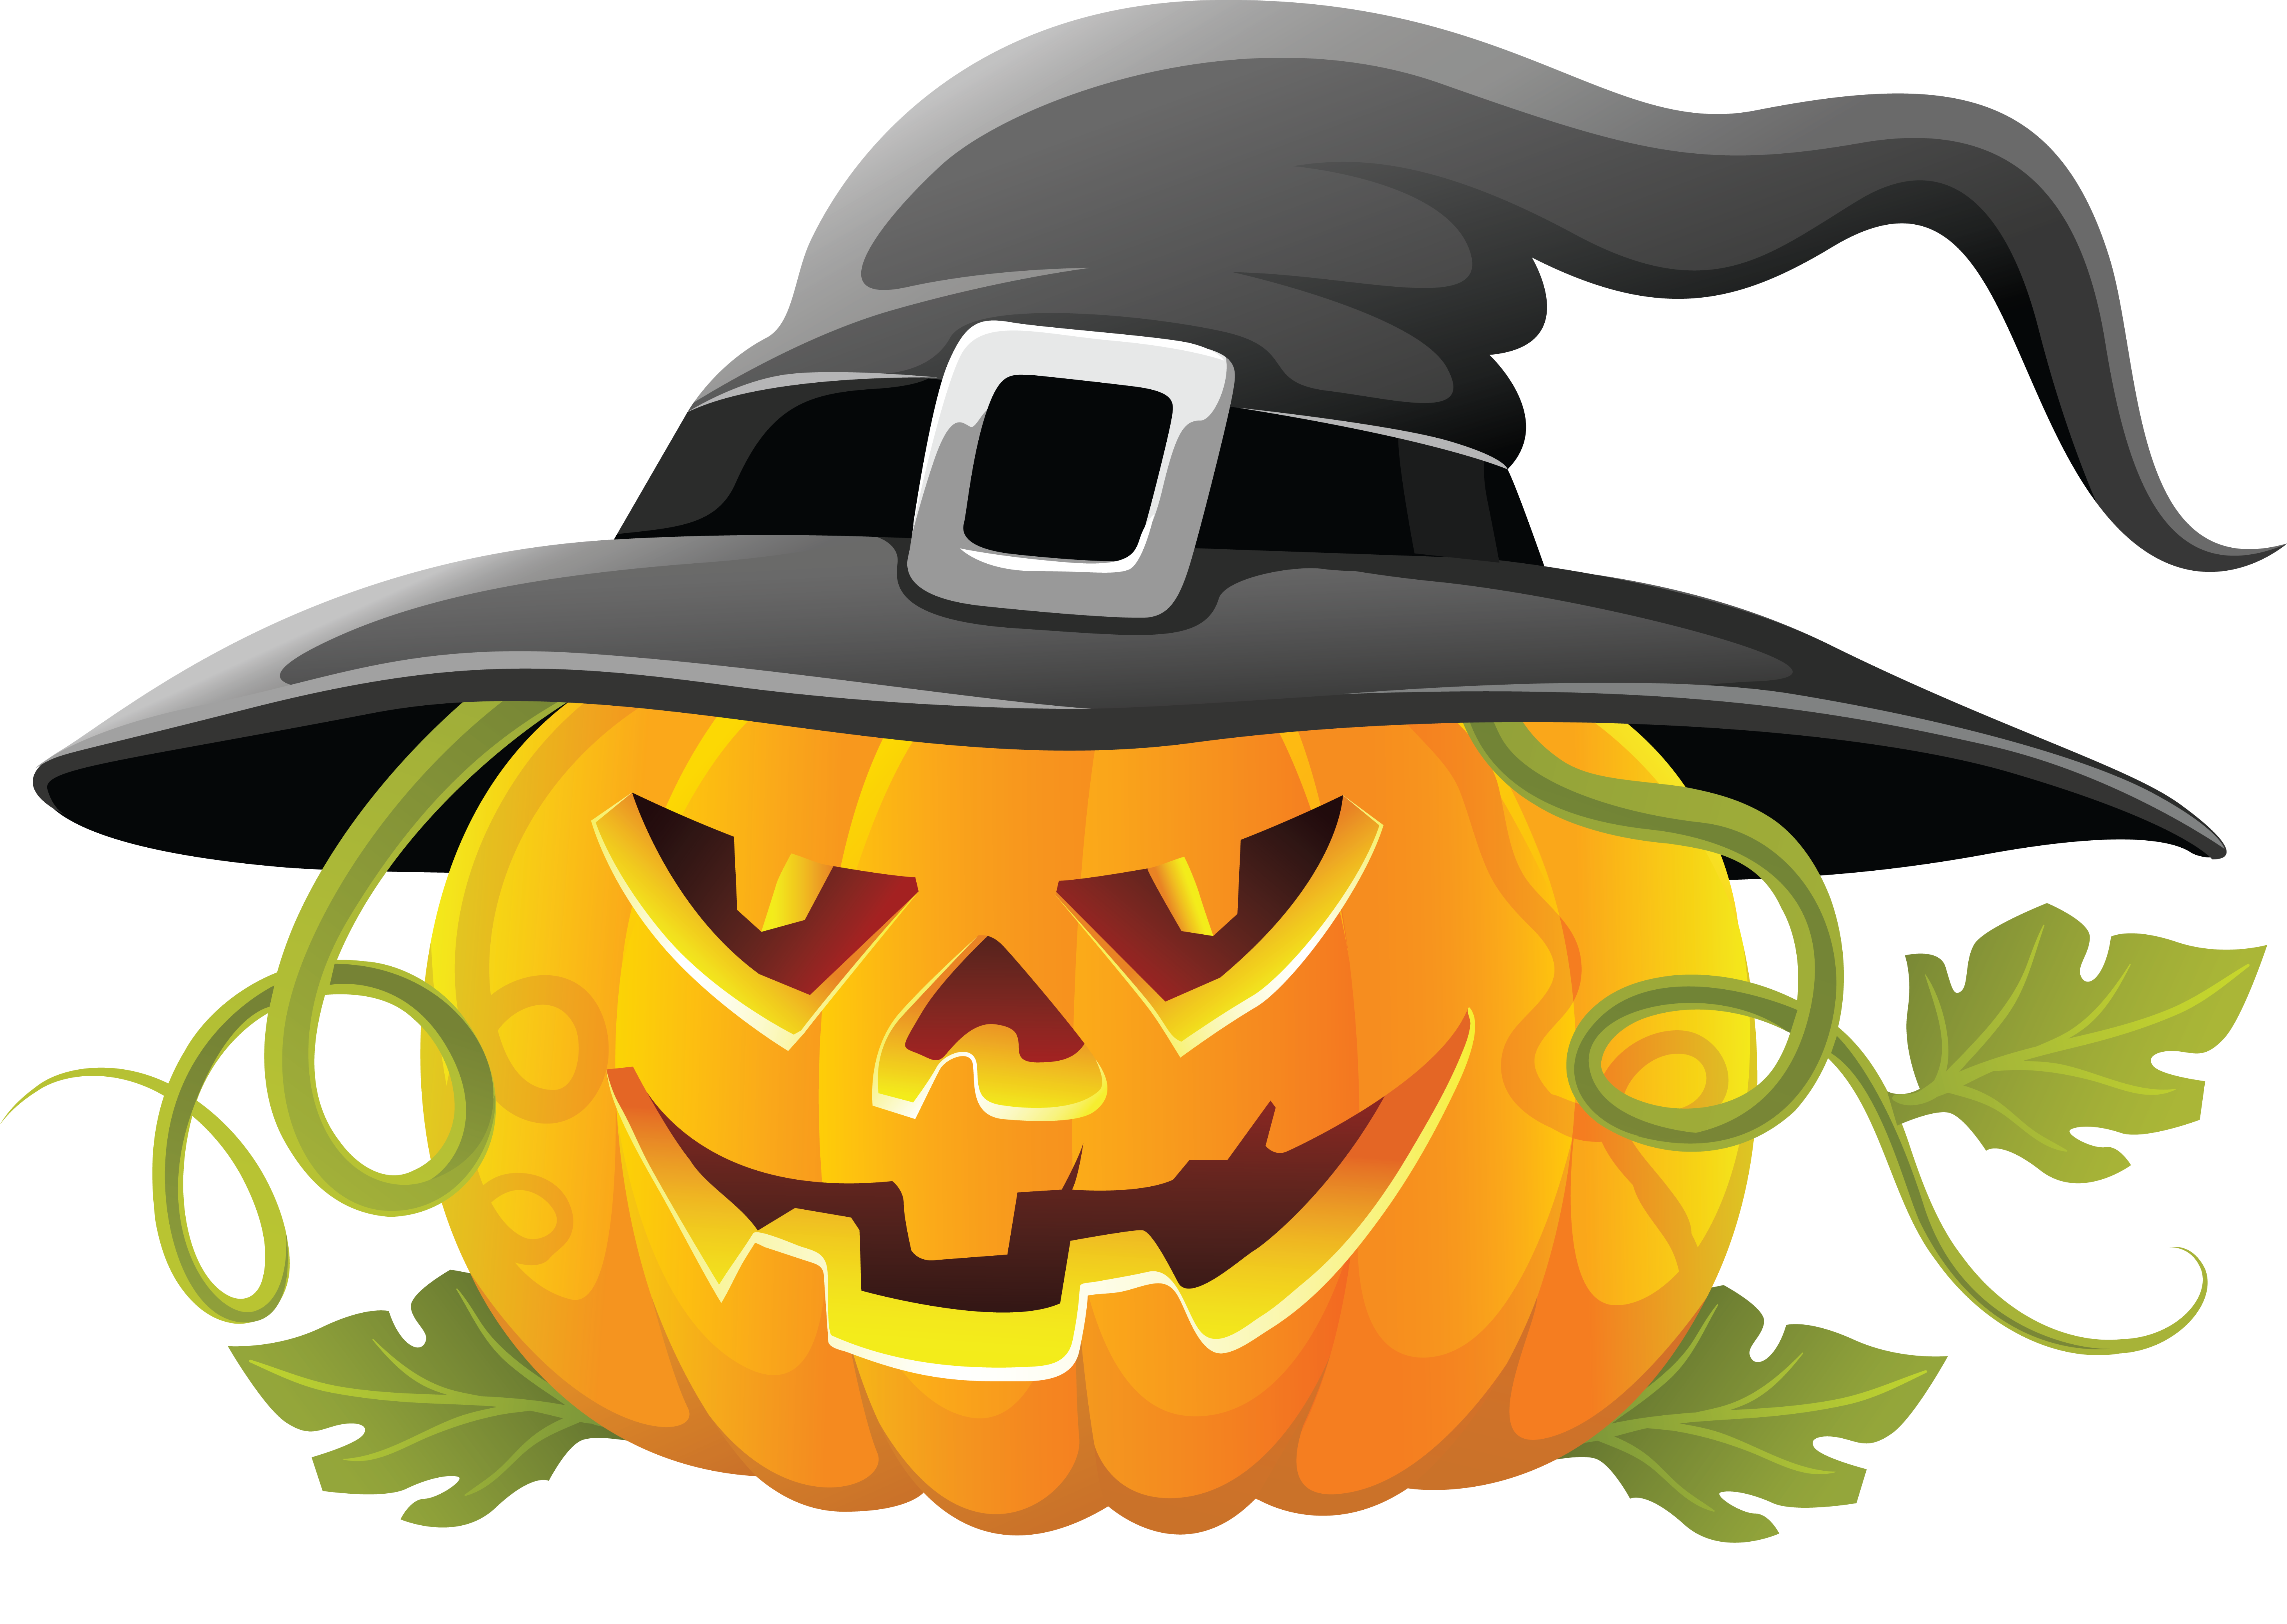 5863x4163 Large Transparent Halloween Pumpkin With Witch Hat Clipart